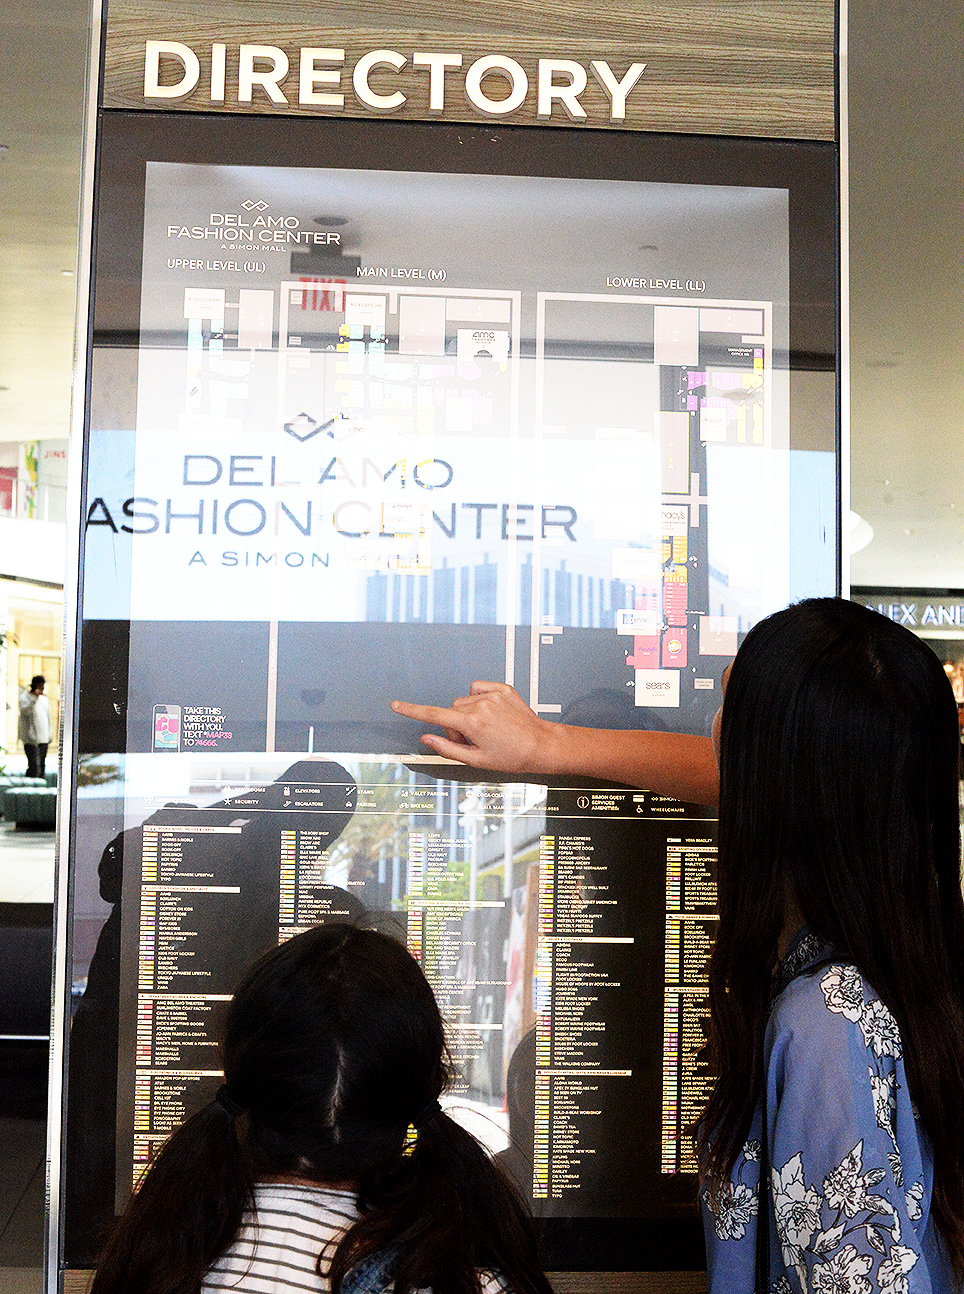 Del Amo Fashion Center simon mall directory